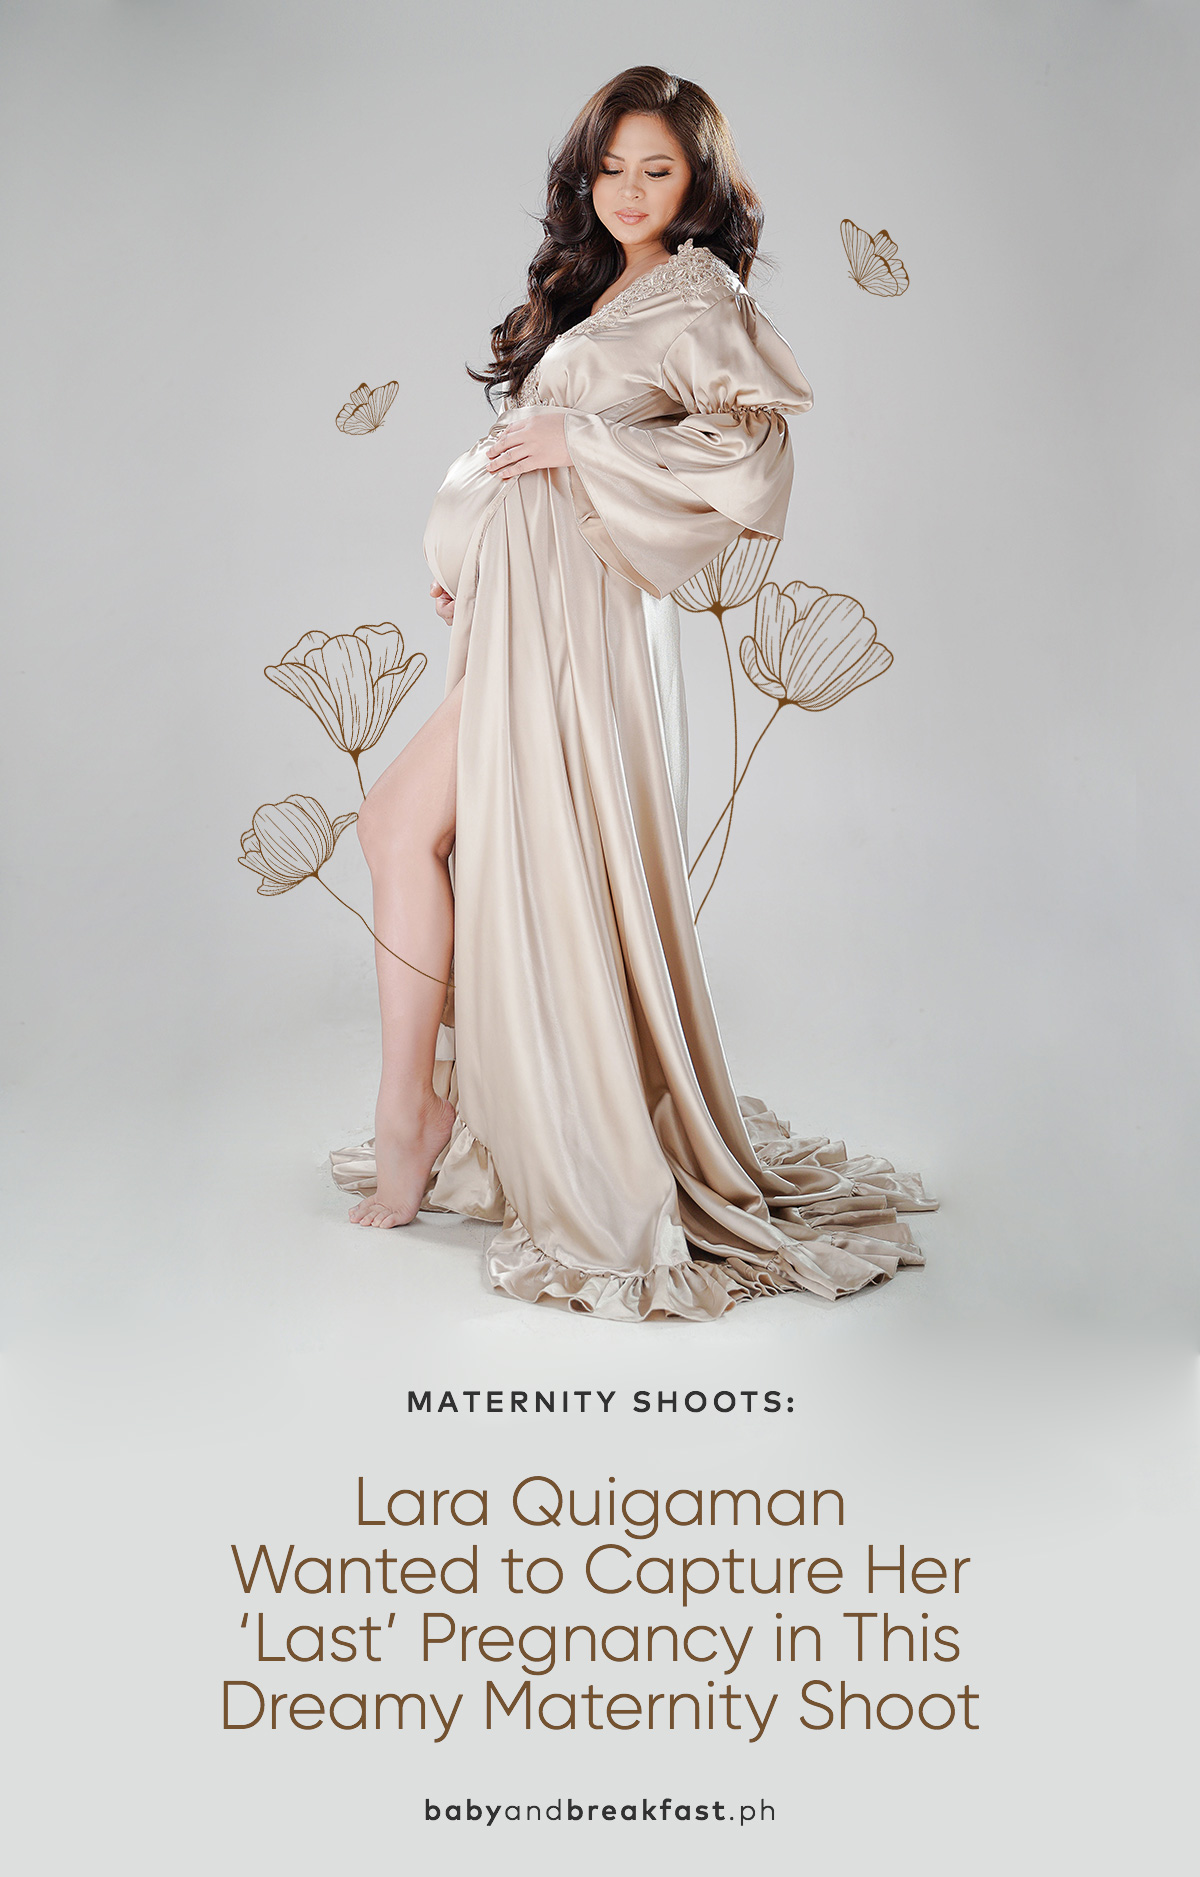 Lara Quigaman Wanted to Capture Her 'Last' Pregnancy in This Dreamy Maternity Shoot